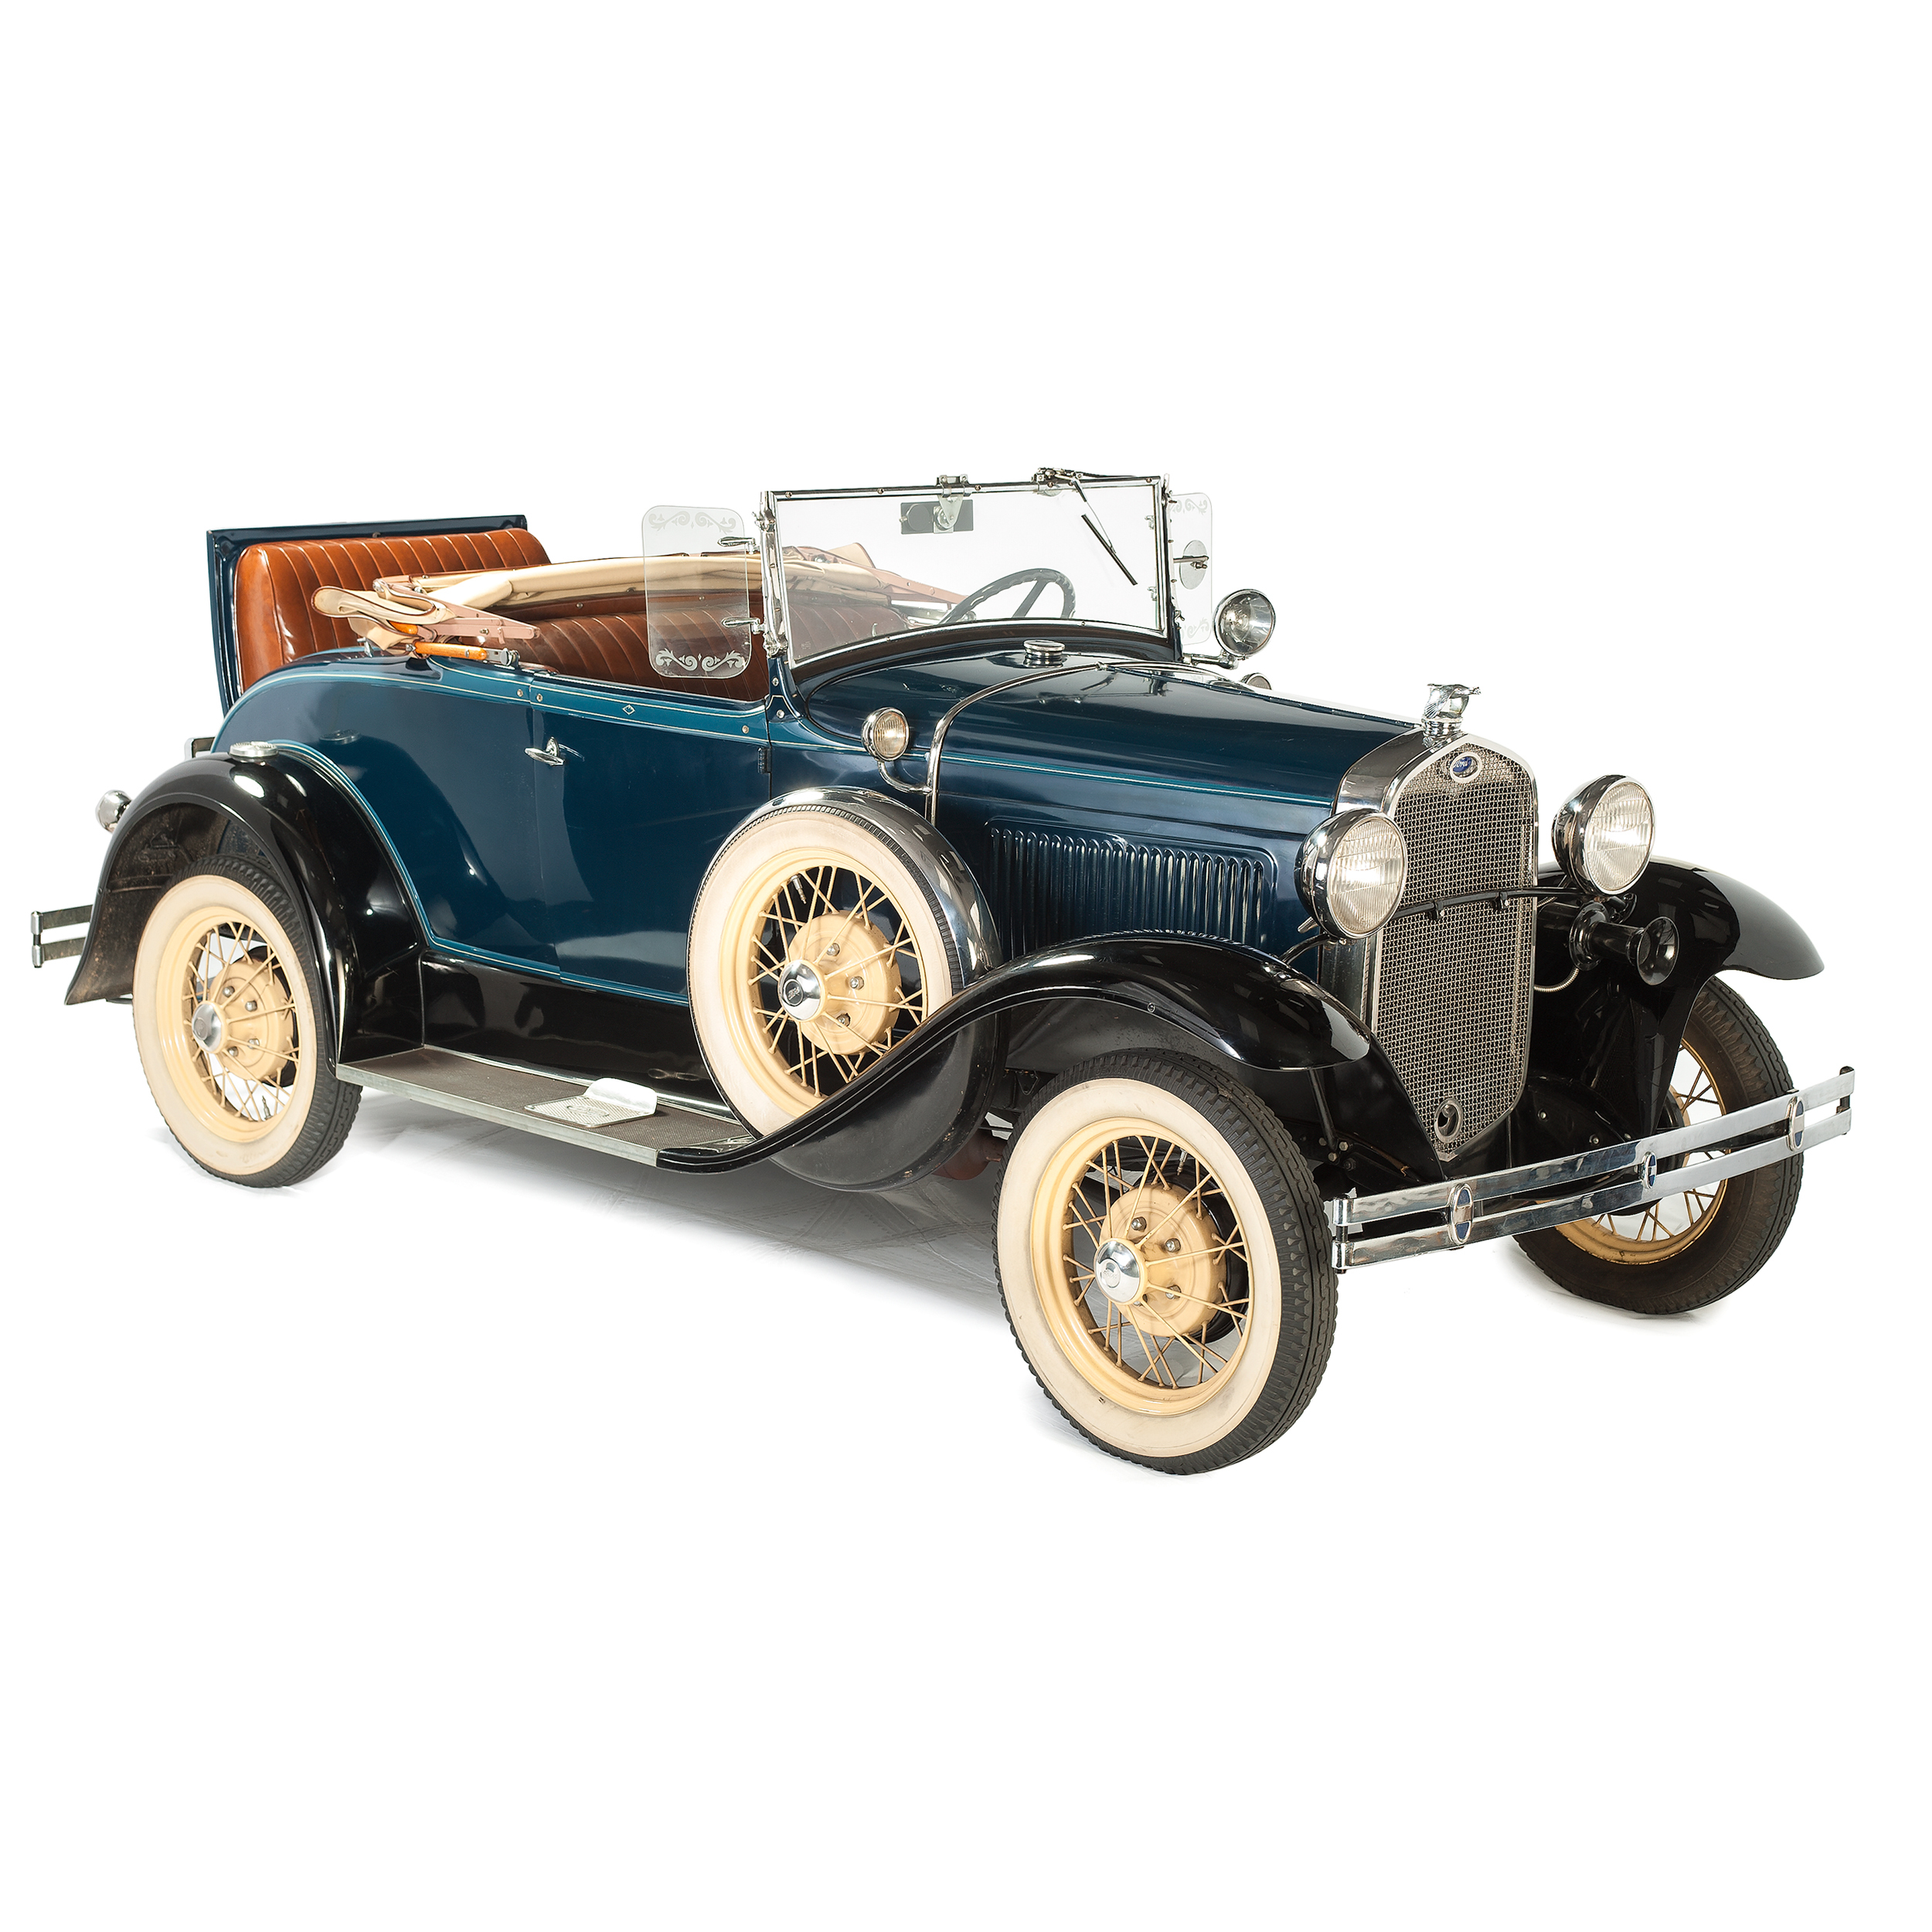 Ford 1930 Model A Deluxe Roadster Cowan S Auction House